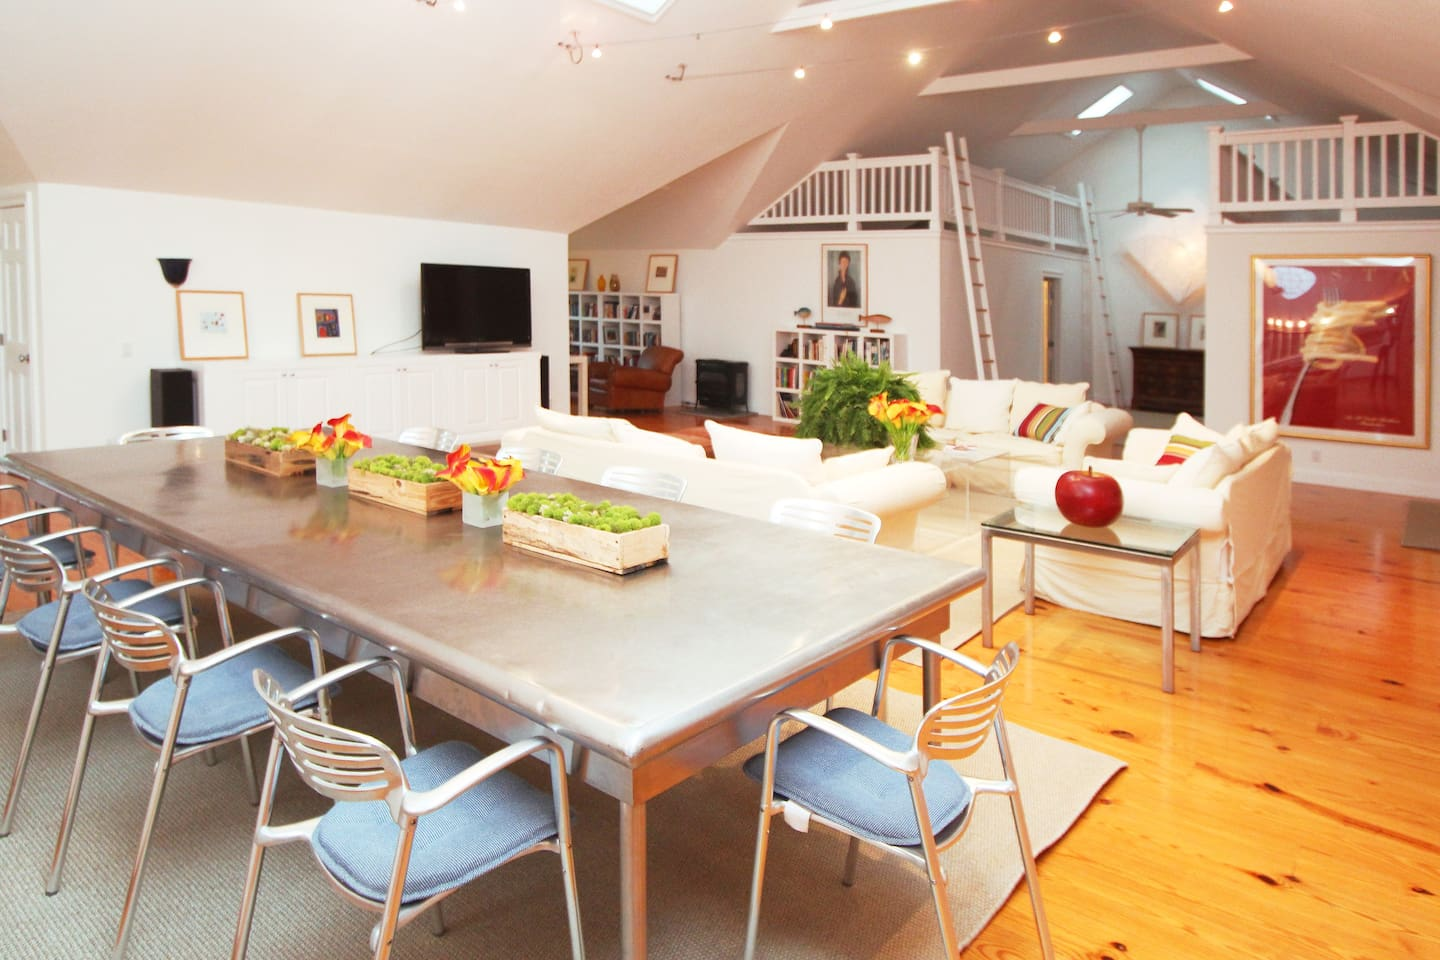 Stunning kitchen and living room is perfect for gatherings that keep everyone part of the fun.